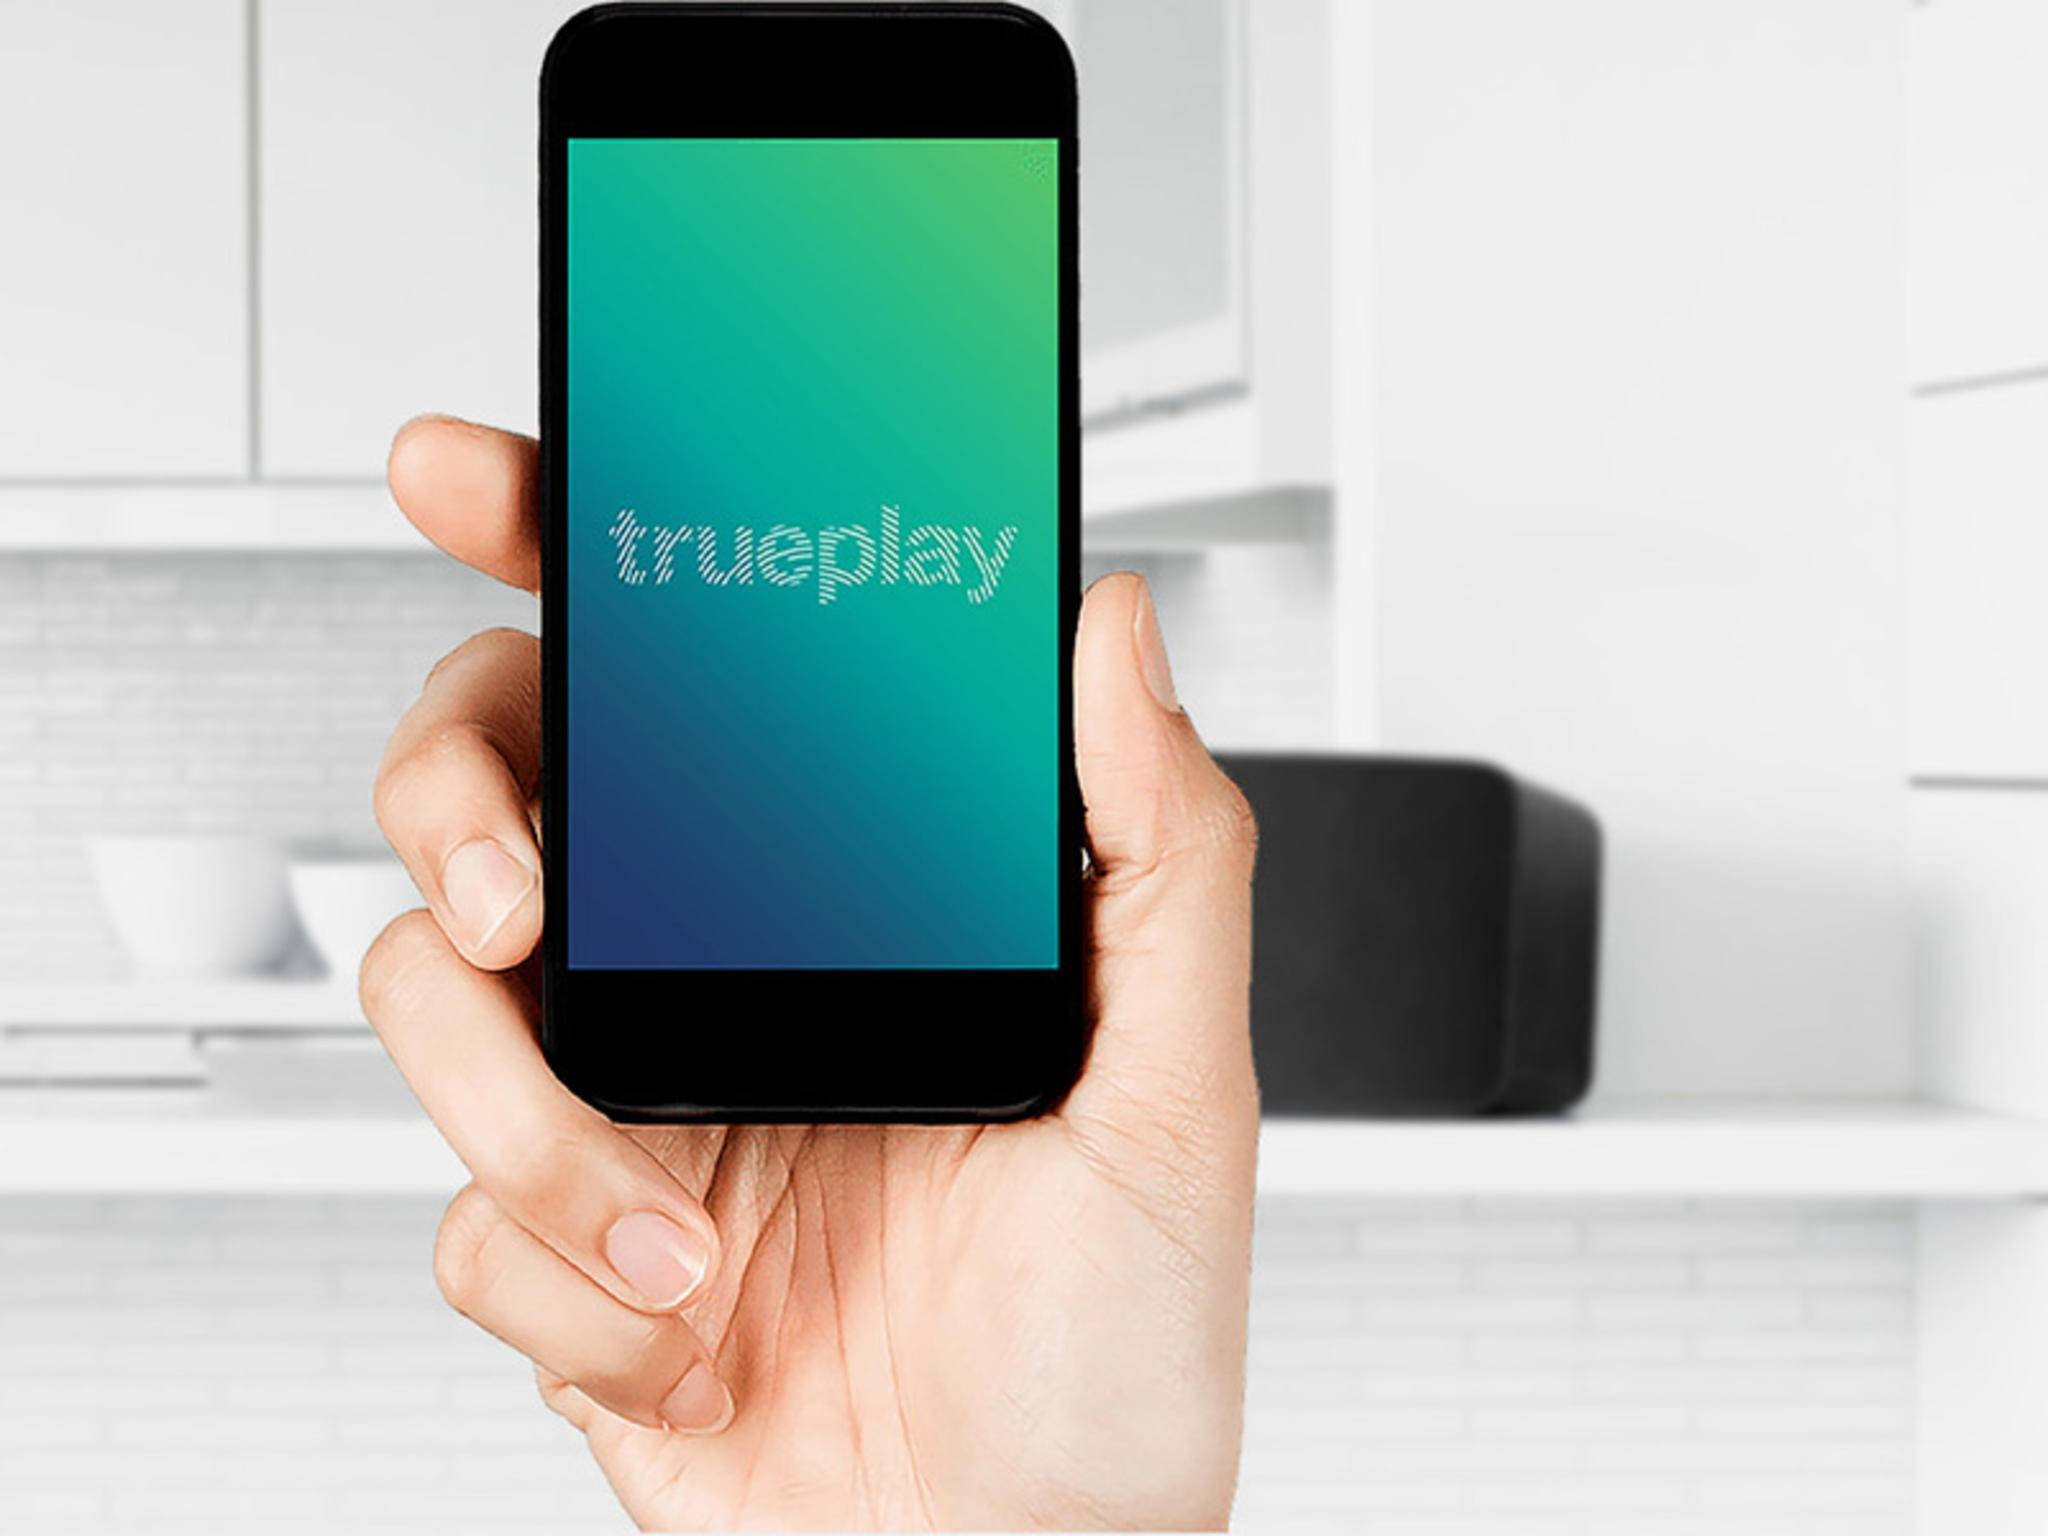 Sonos preist die Trueplay als revolutionäre Tuning-Software an.